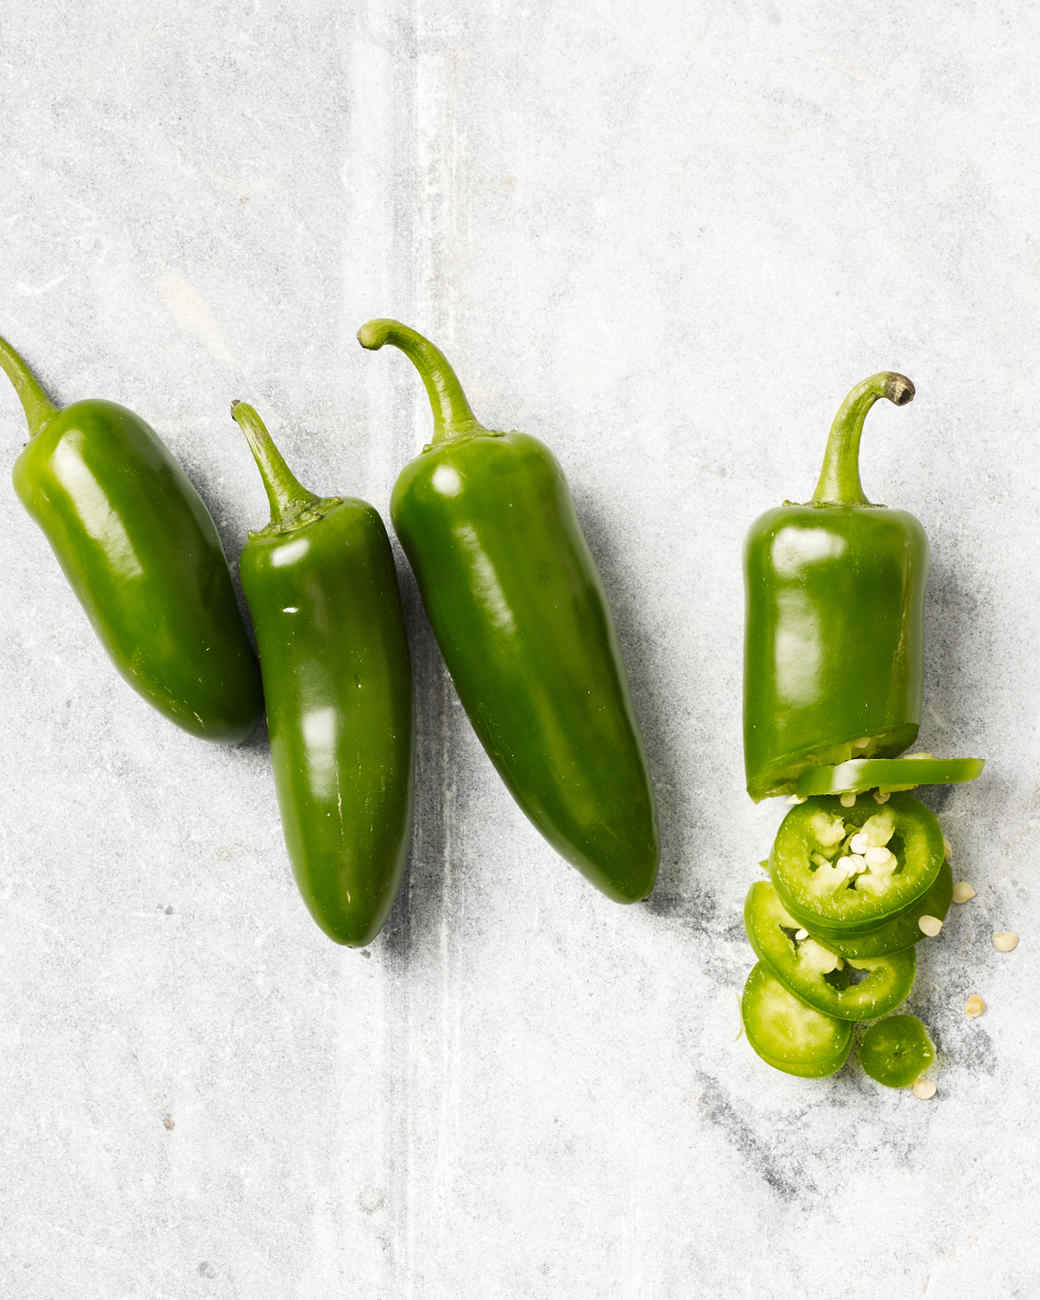 jalapeno-peppers-157-d110163.jpg